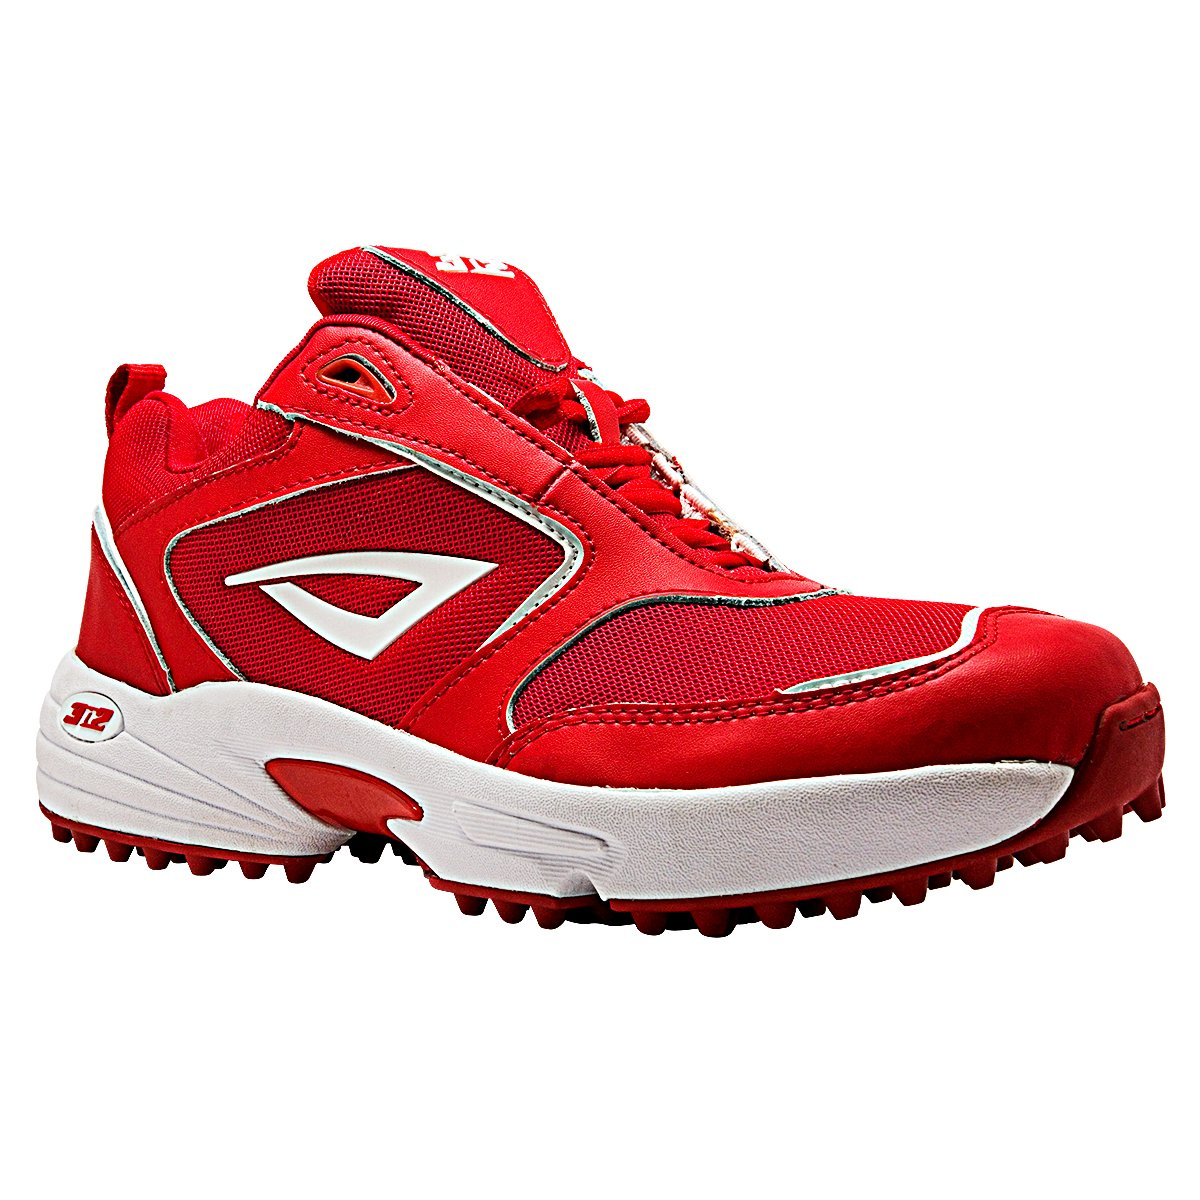 3N2 Mofo Turf Trainer Red, 9.5 by 3N2